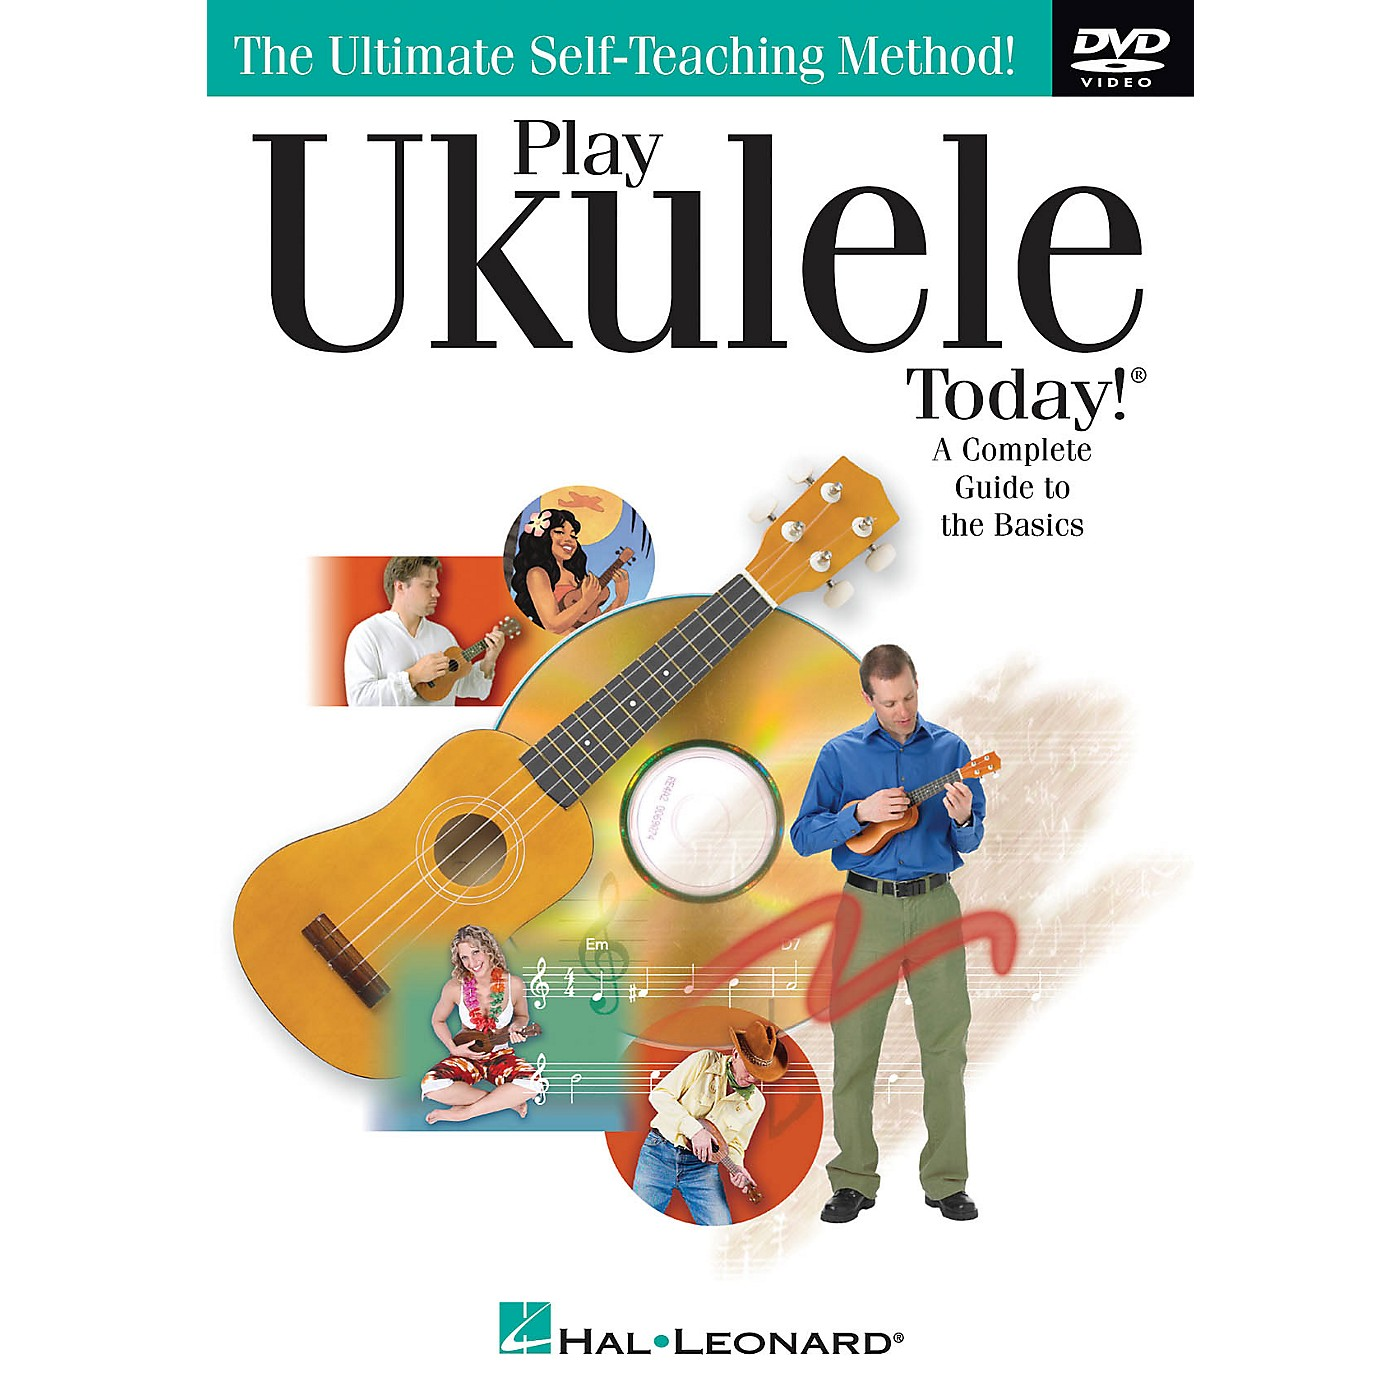 Hal Leonard Play Ukulele Today! (A Complete Guide to the Basics) DVD Series DVD Written by John Nicholson thumbnail